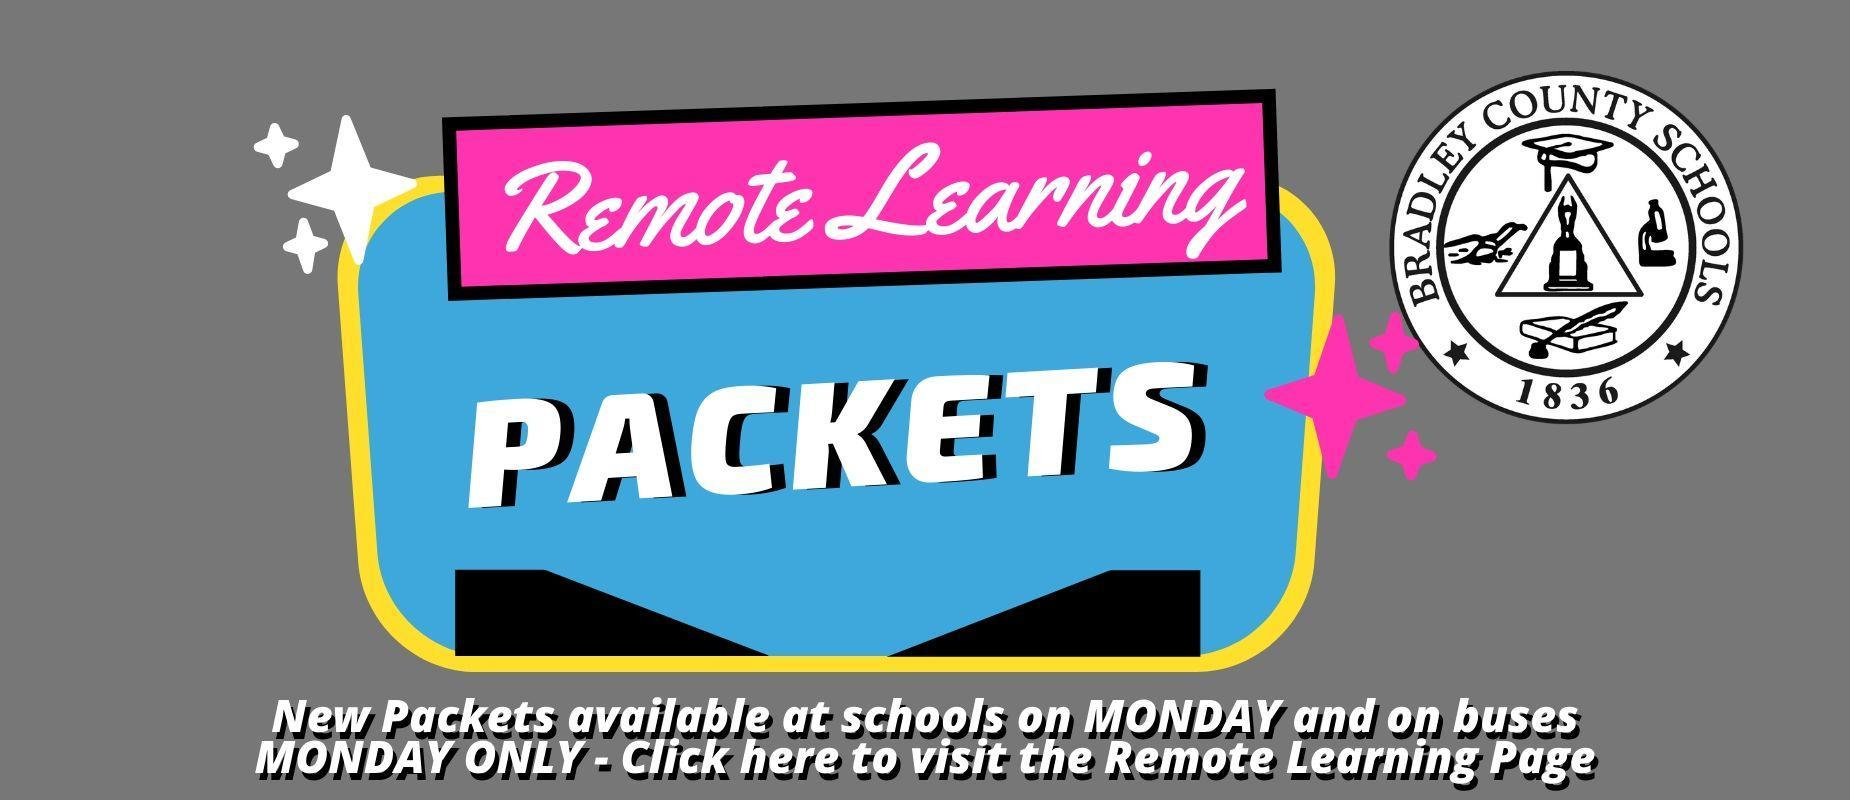 Remote Learning Packets